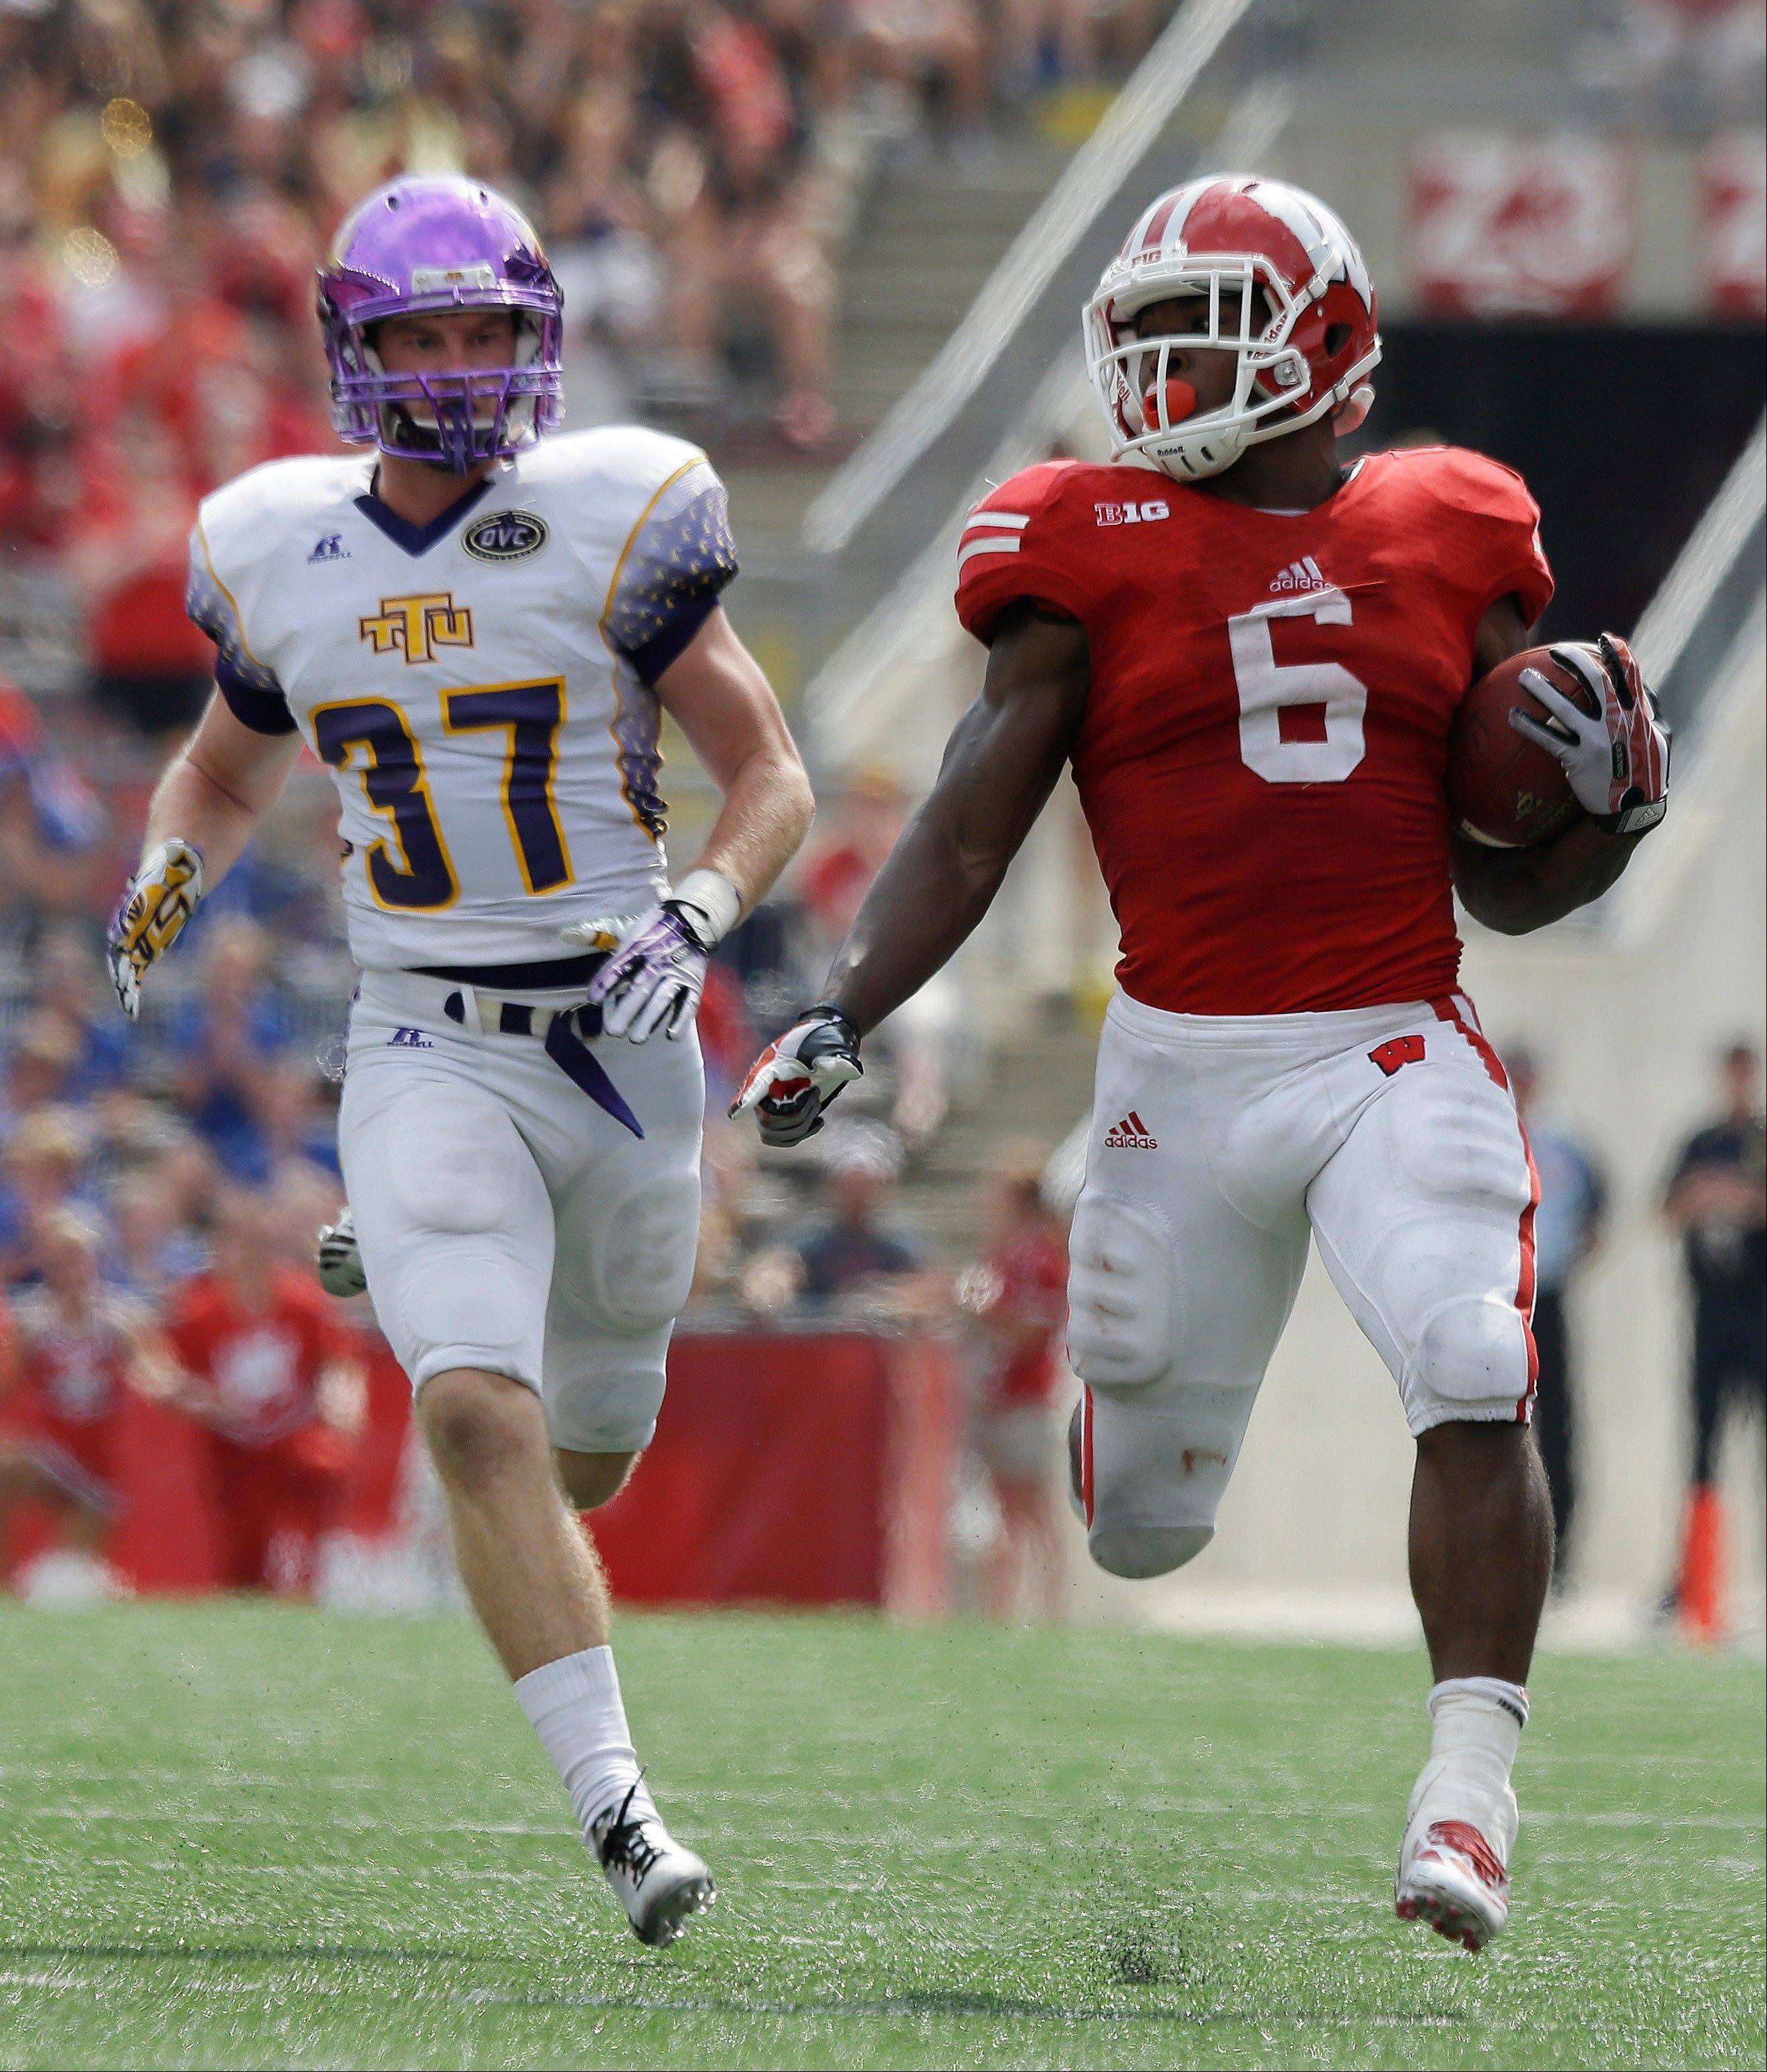 Wisconsin's Corey Clement breaks away from Tennessee Tech's Patrick Prewitt for a 75-yard touchdown run during the second half of last Saturday's game in Madison, Wis. The Badgers will face a much tougher test this Saturday at Arizona State.